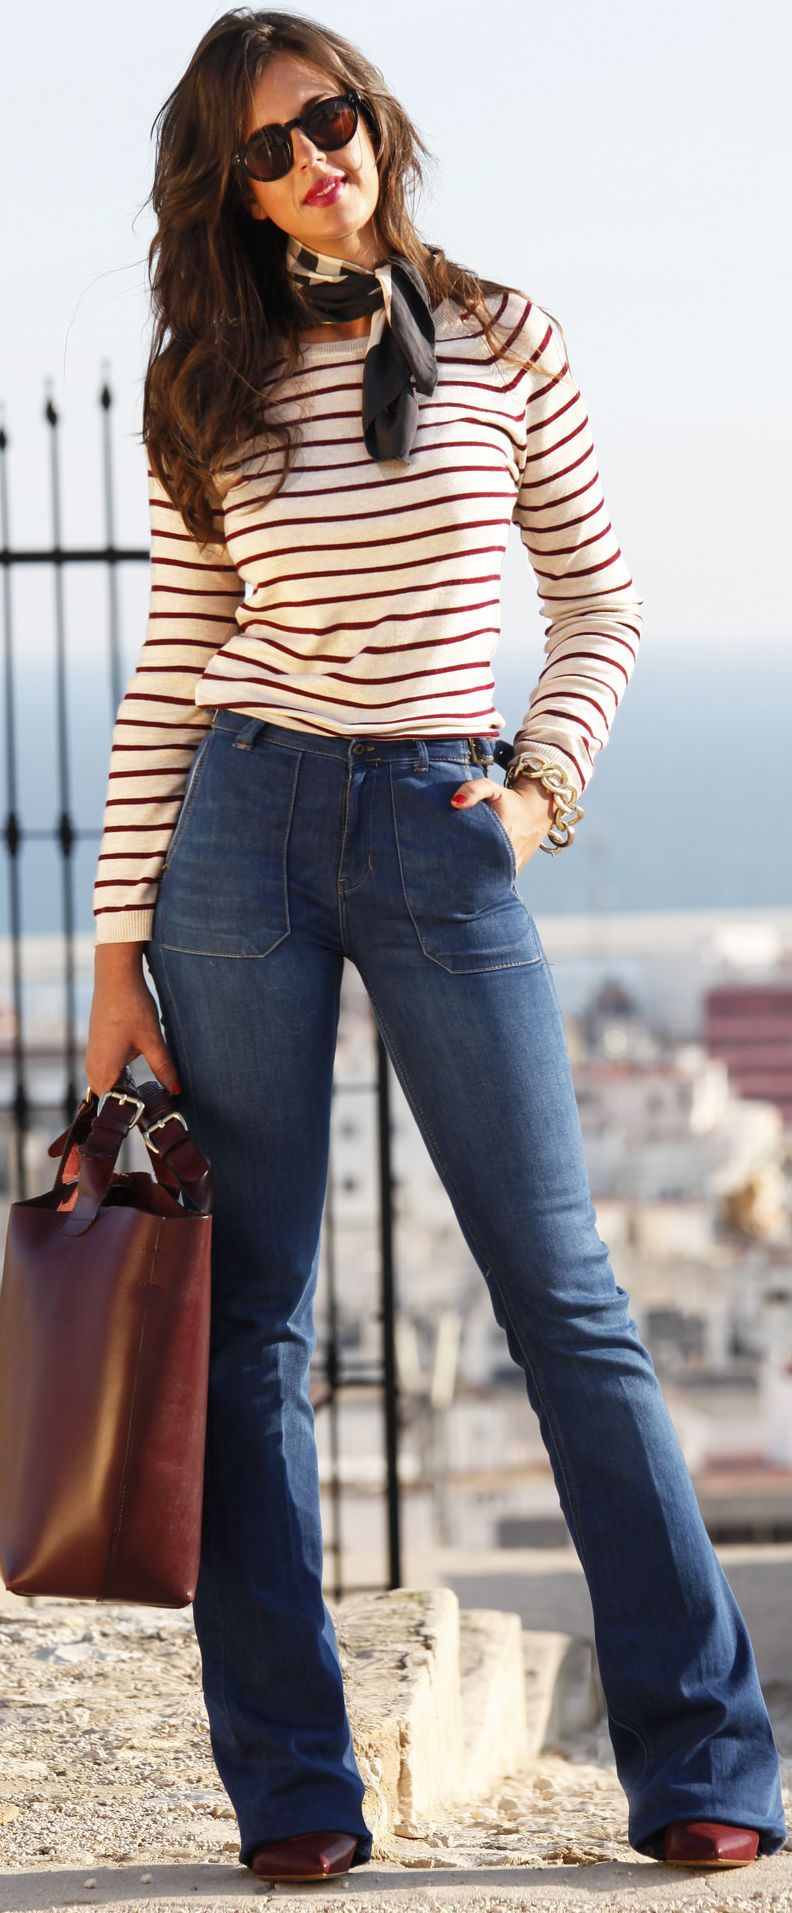 Another s influenced outfit you have these pieces a striped top